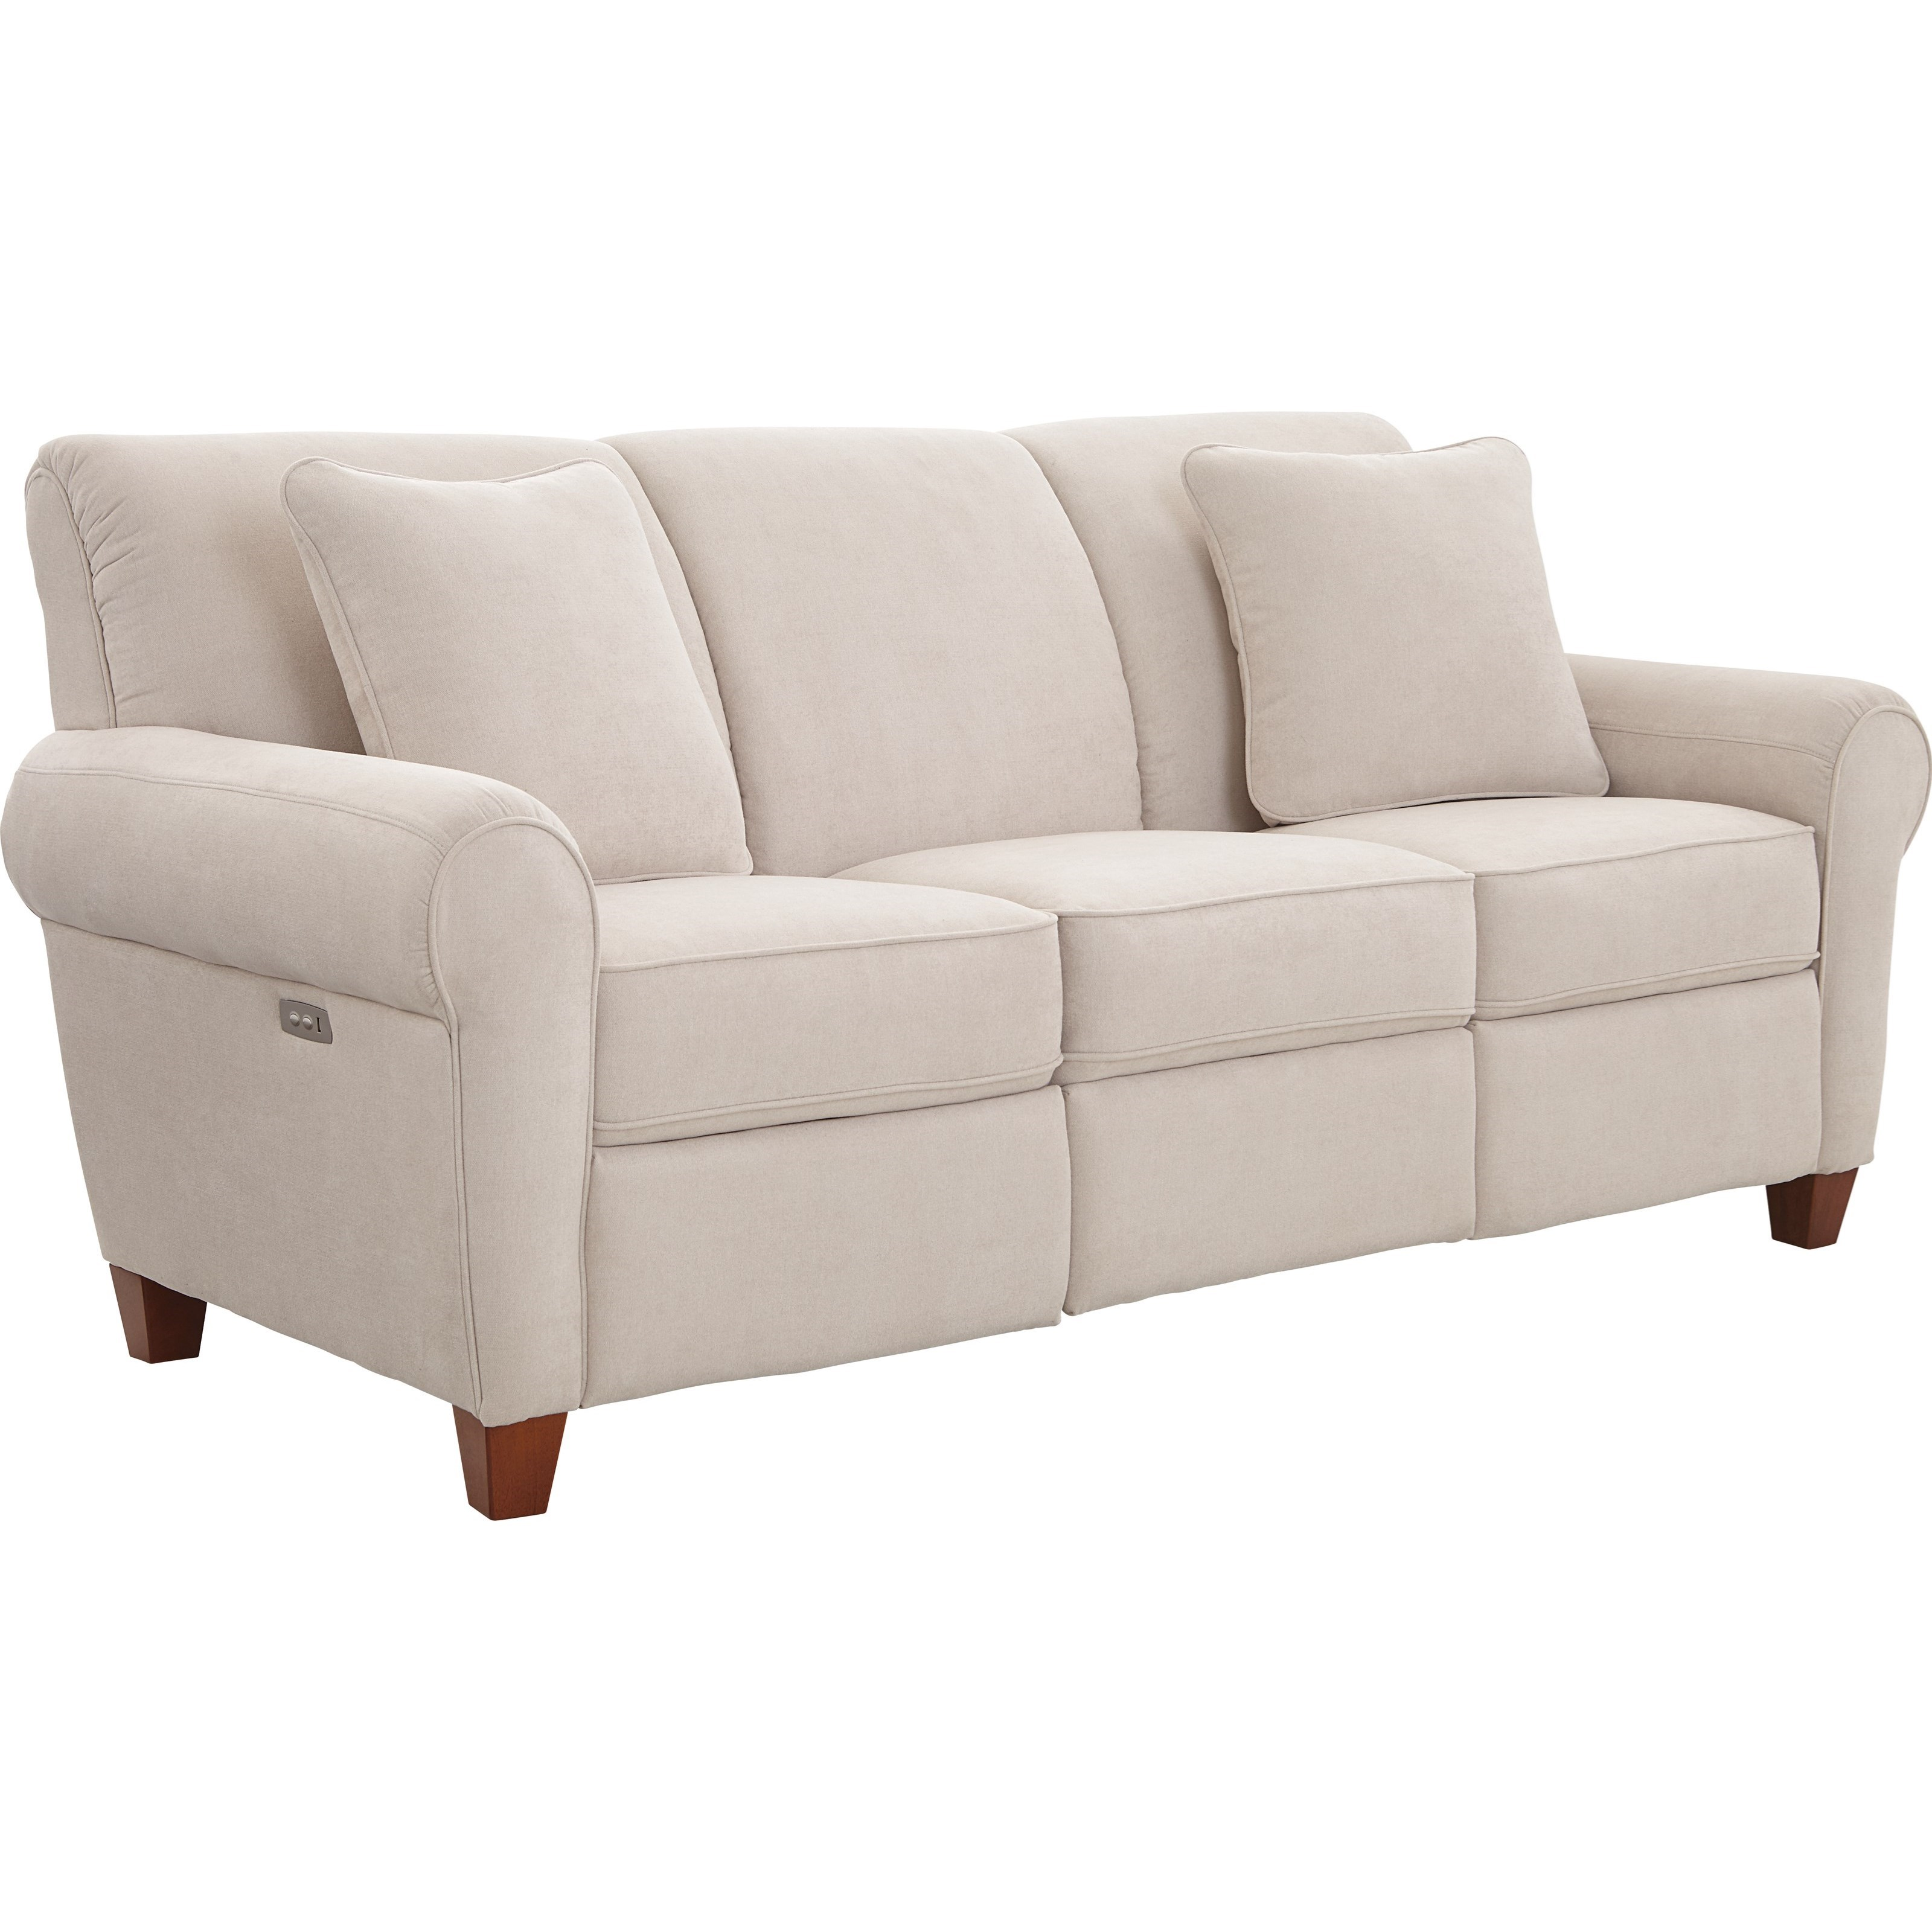 Bennett Duo™ Reclining Sofa by La-Z-Boy at Bennett's Furniture and Mattresses